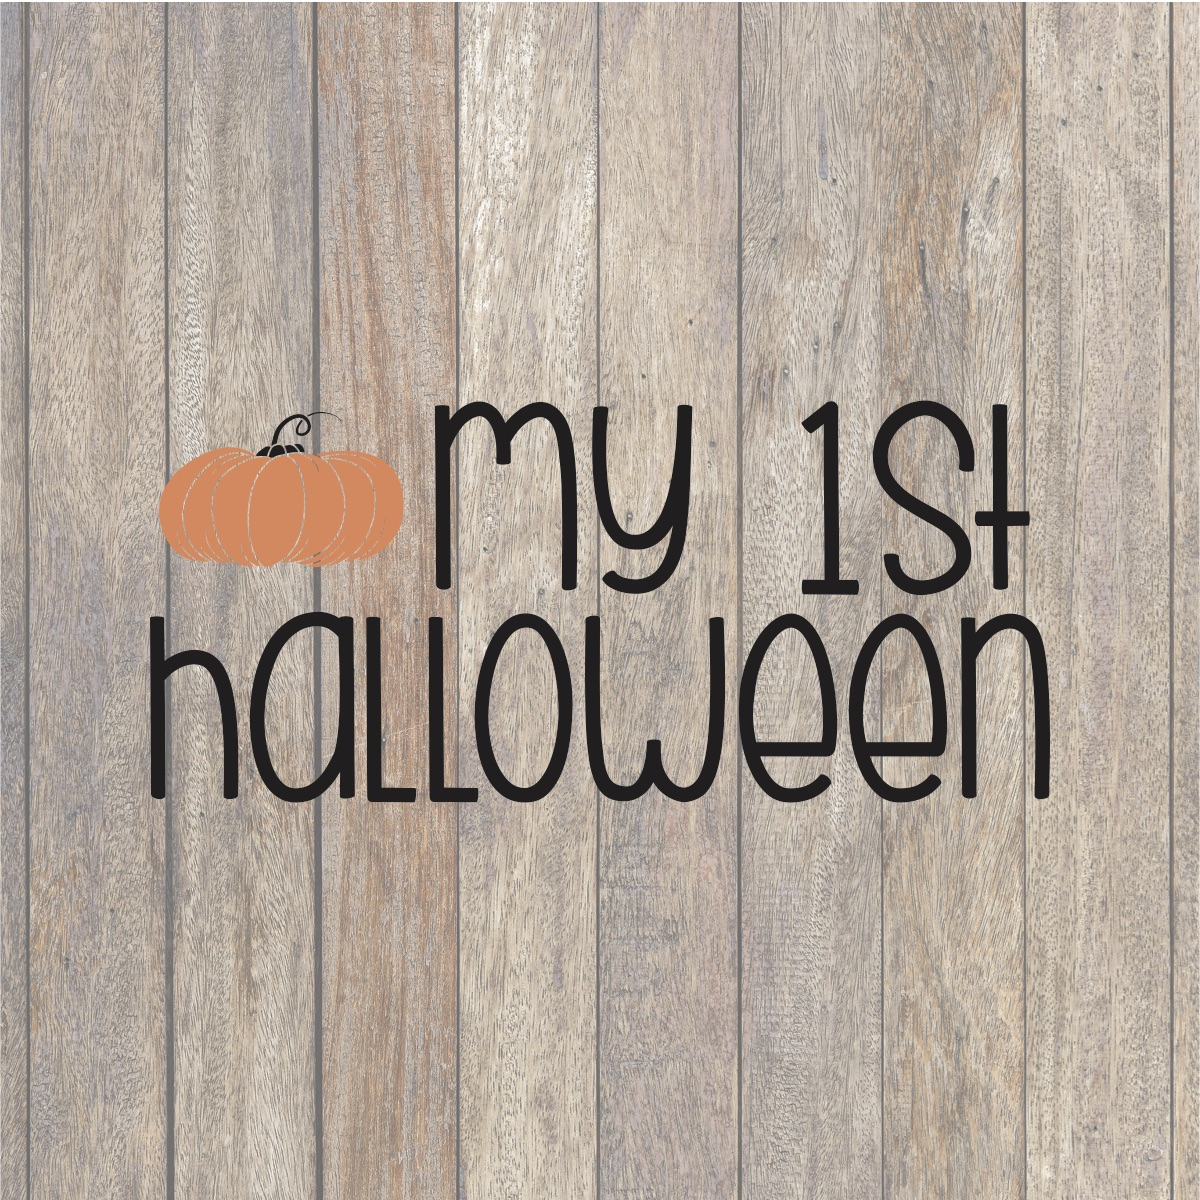 32+ First Halloween Svg DXF